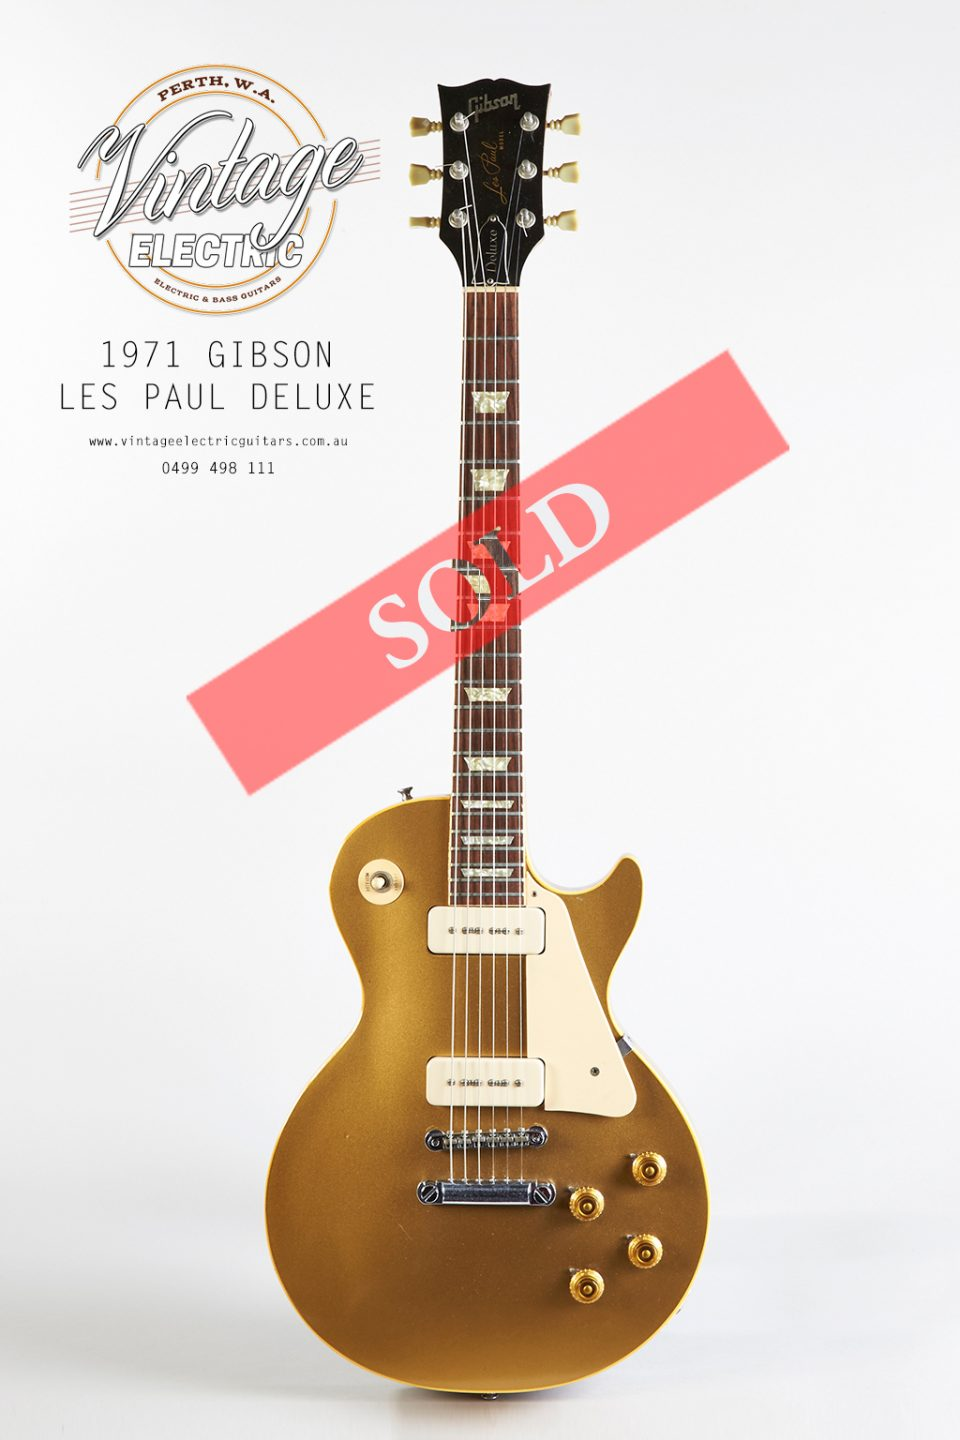 1971 Gibson Les Paul Goldtop Deluxe